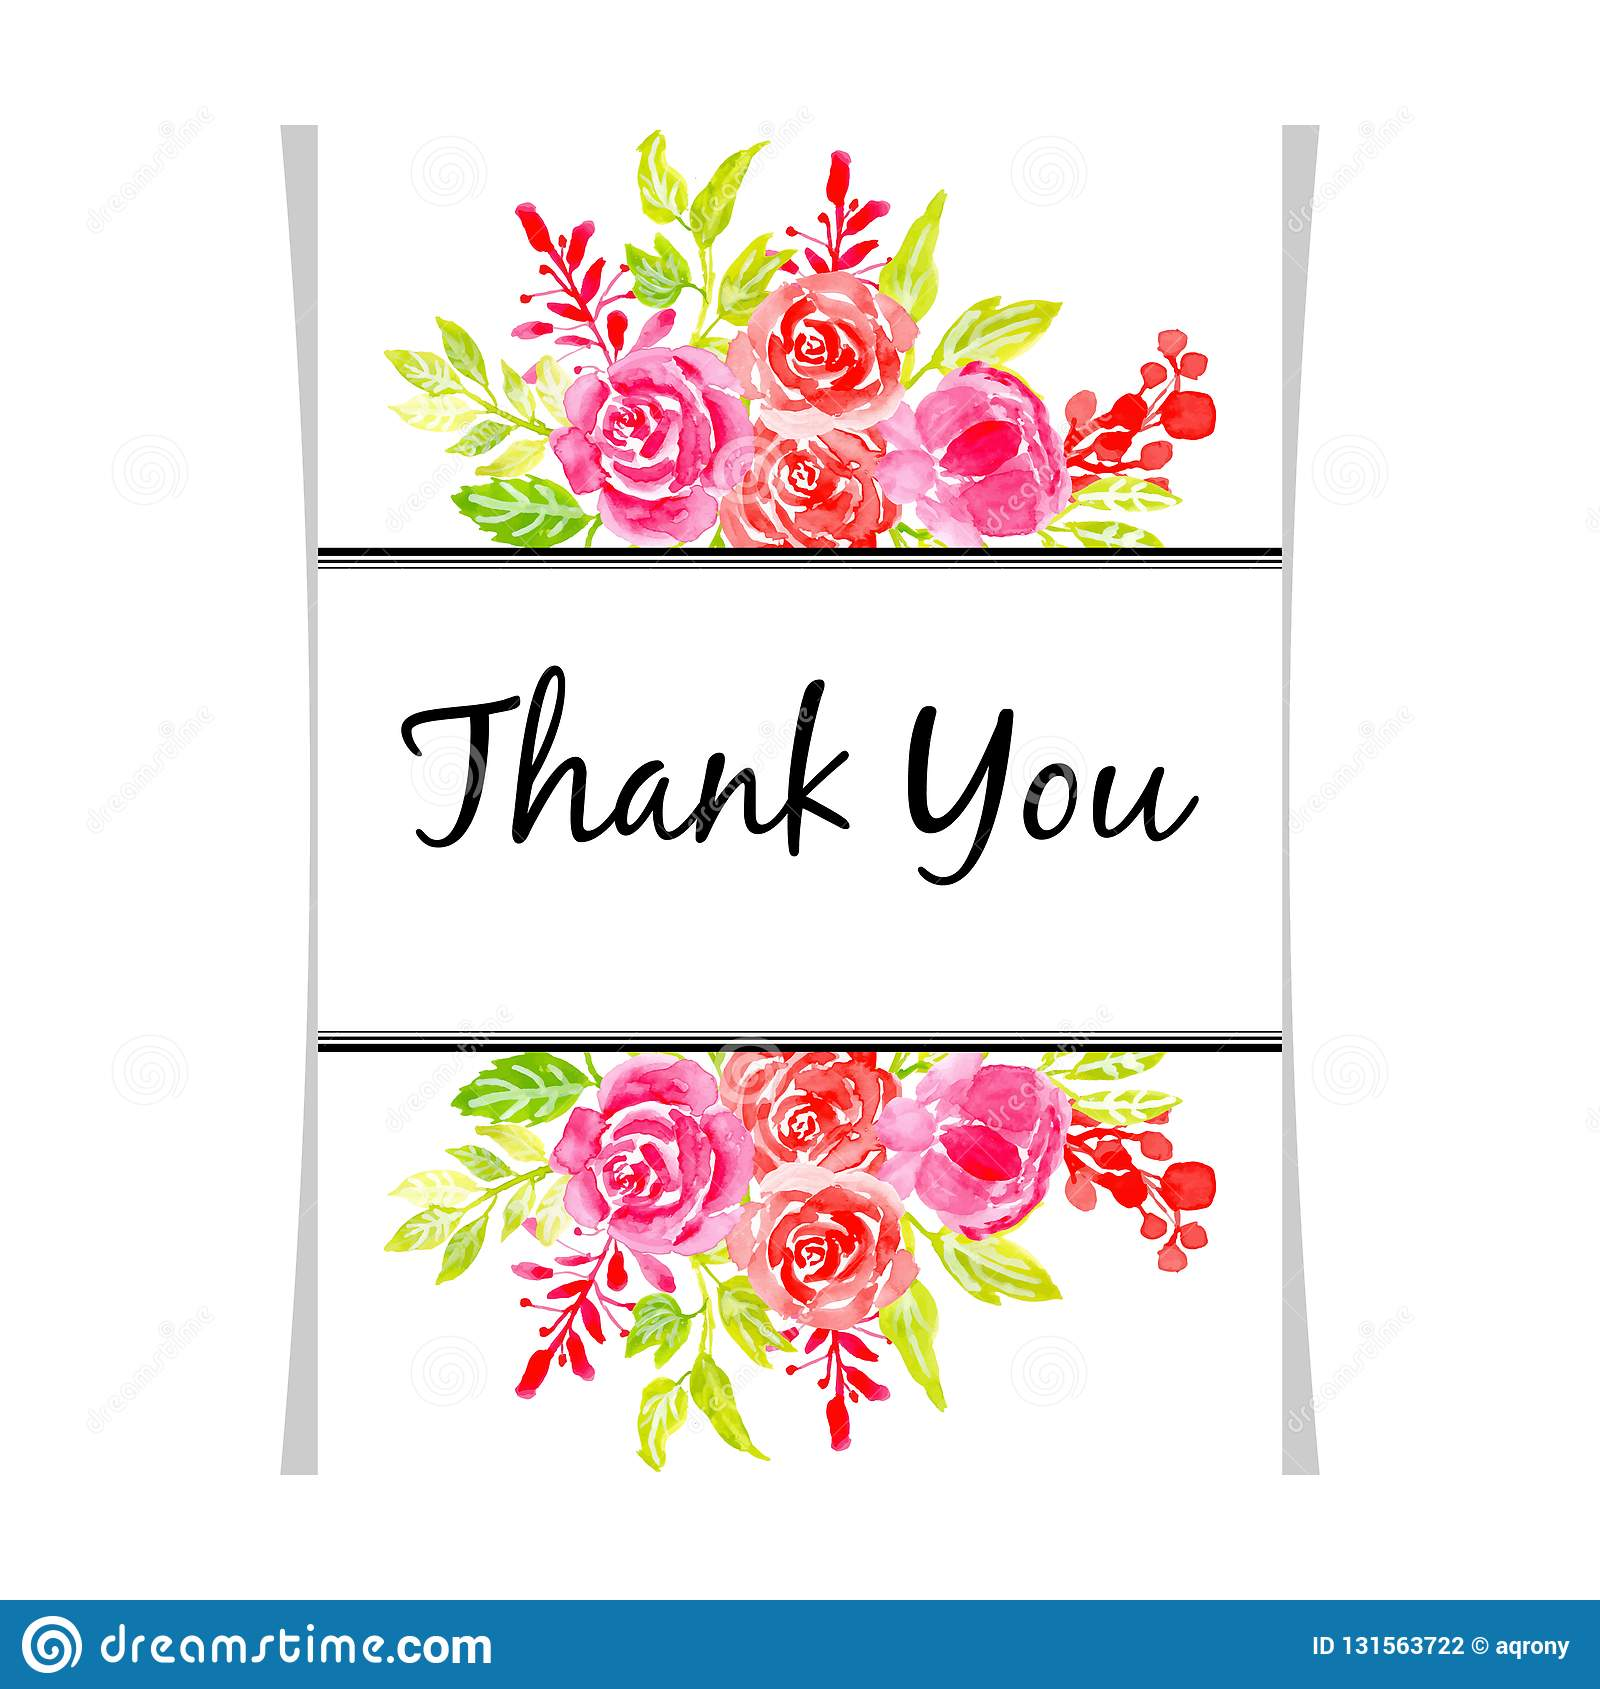 Watercolor Floral Beautiful Frame Thank You Illustration